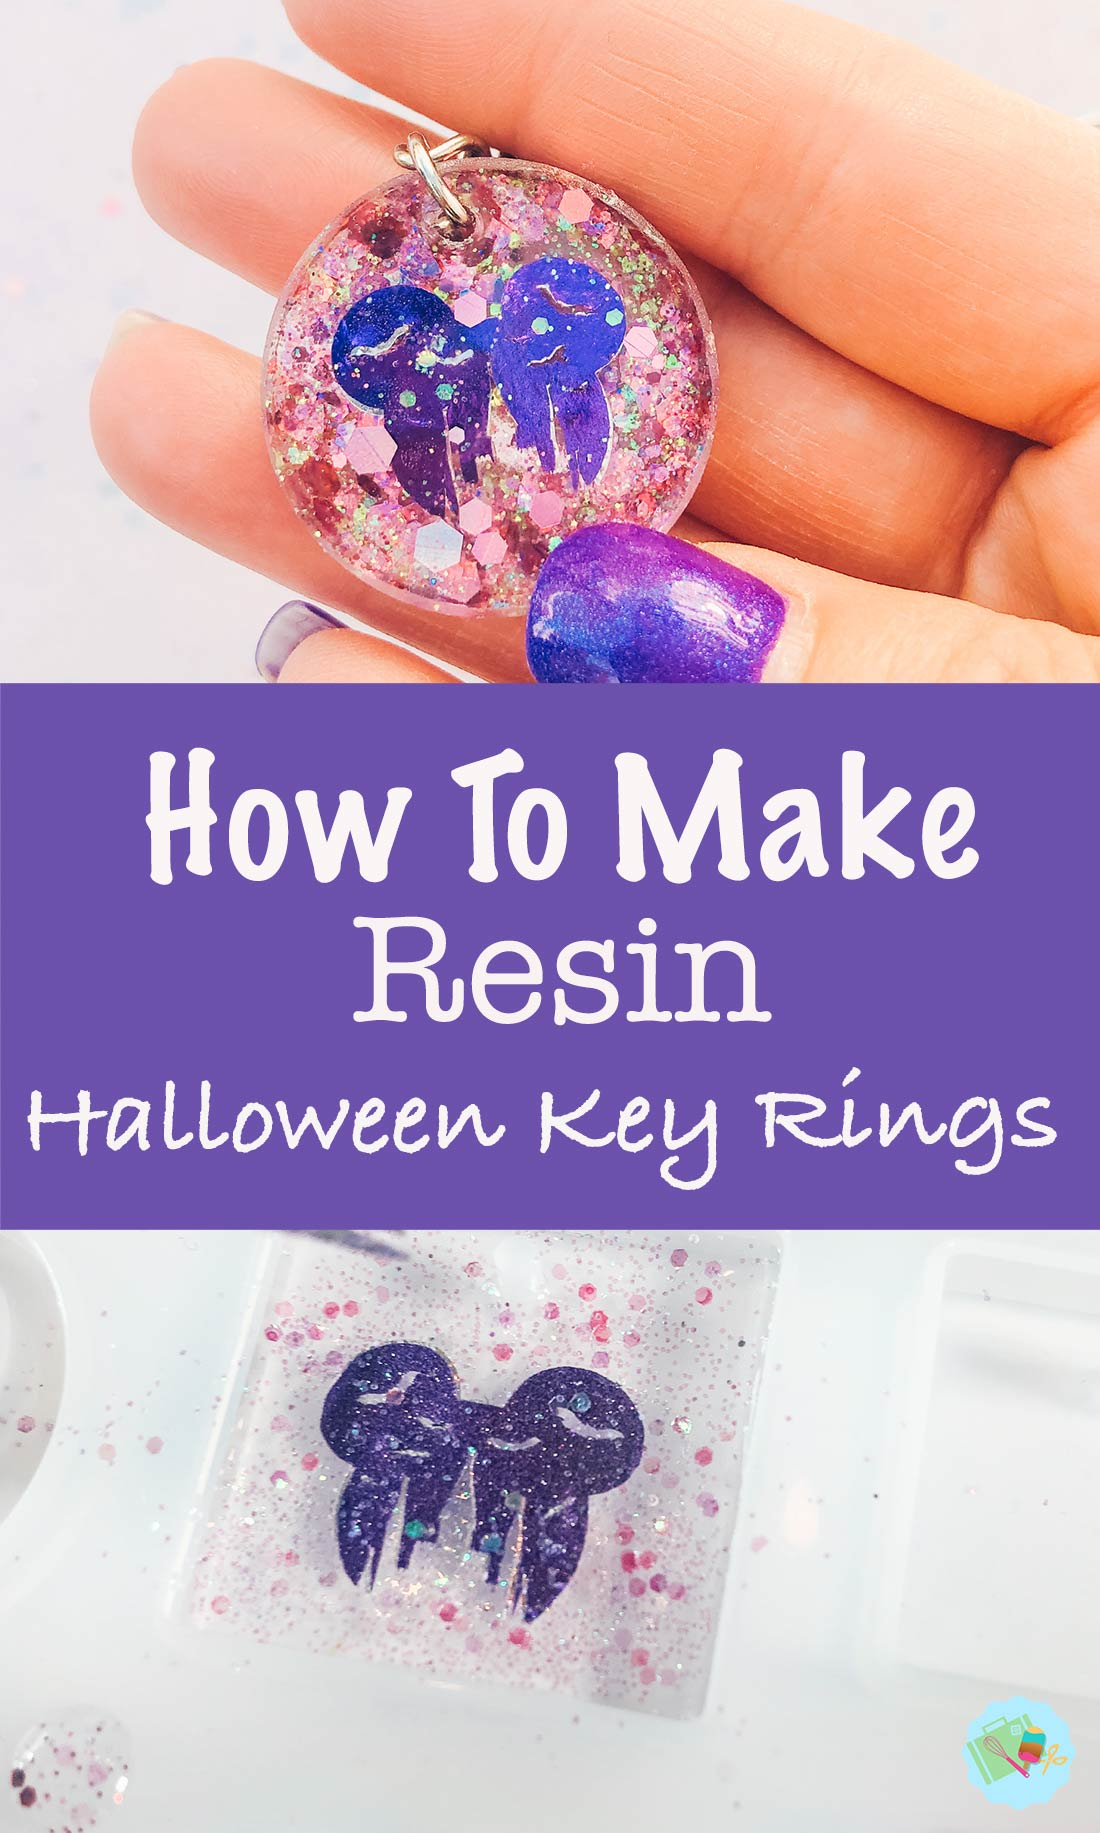 How to make resin Halloween Key rings